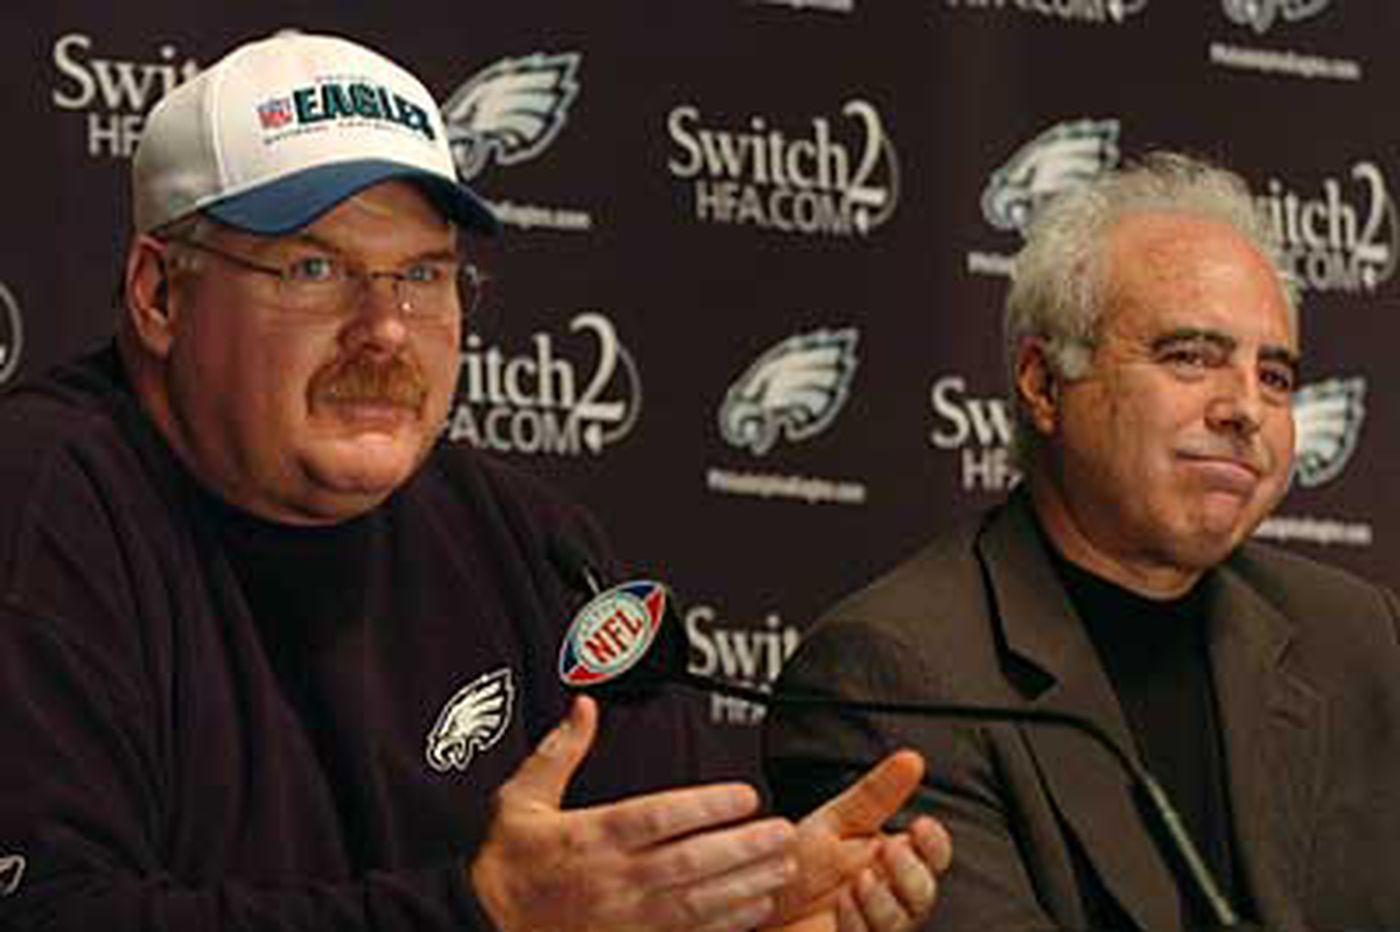 Gonzo: Reid and Lurie's top-cat attitude is mystifying